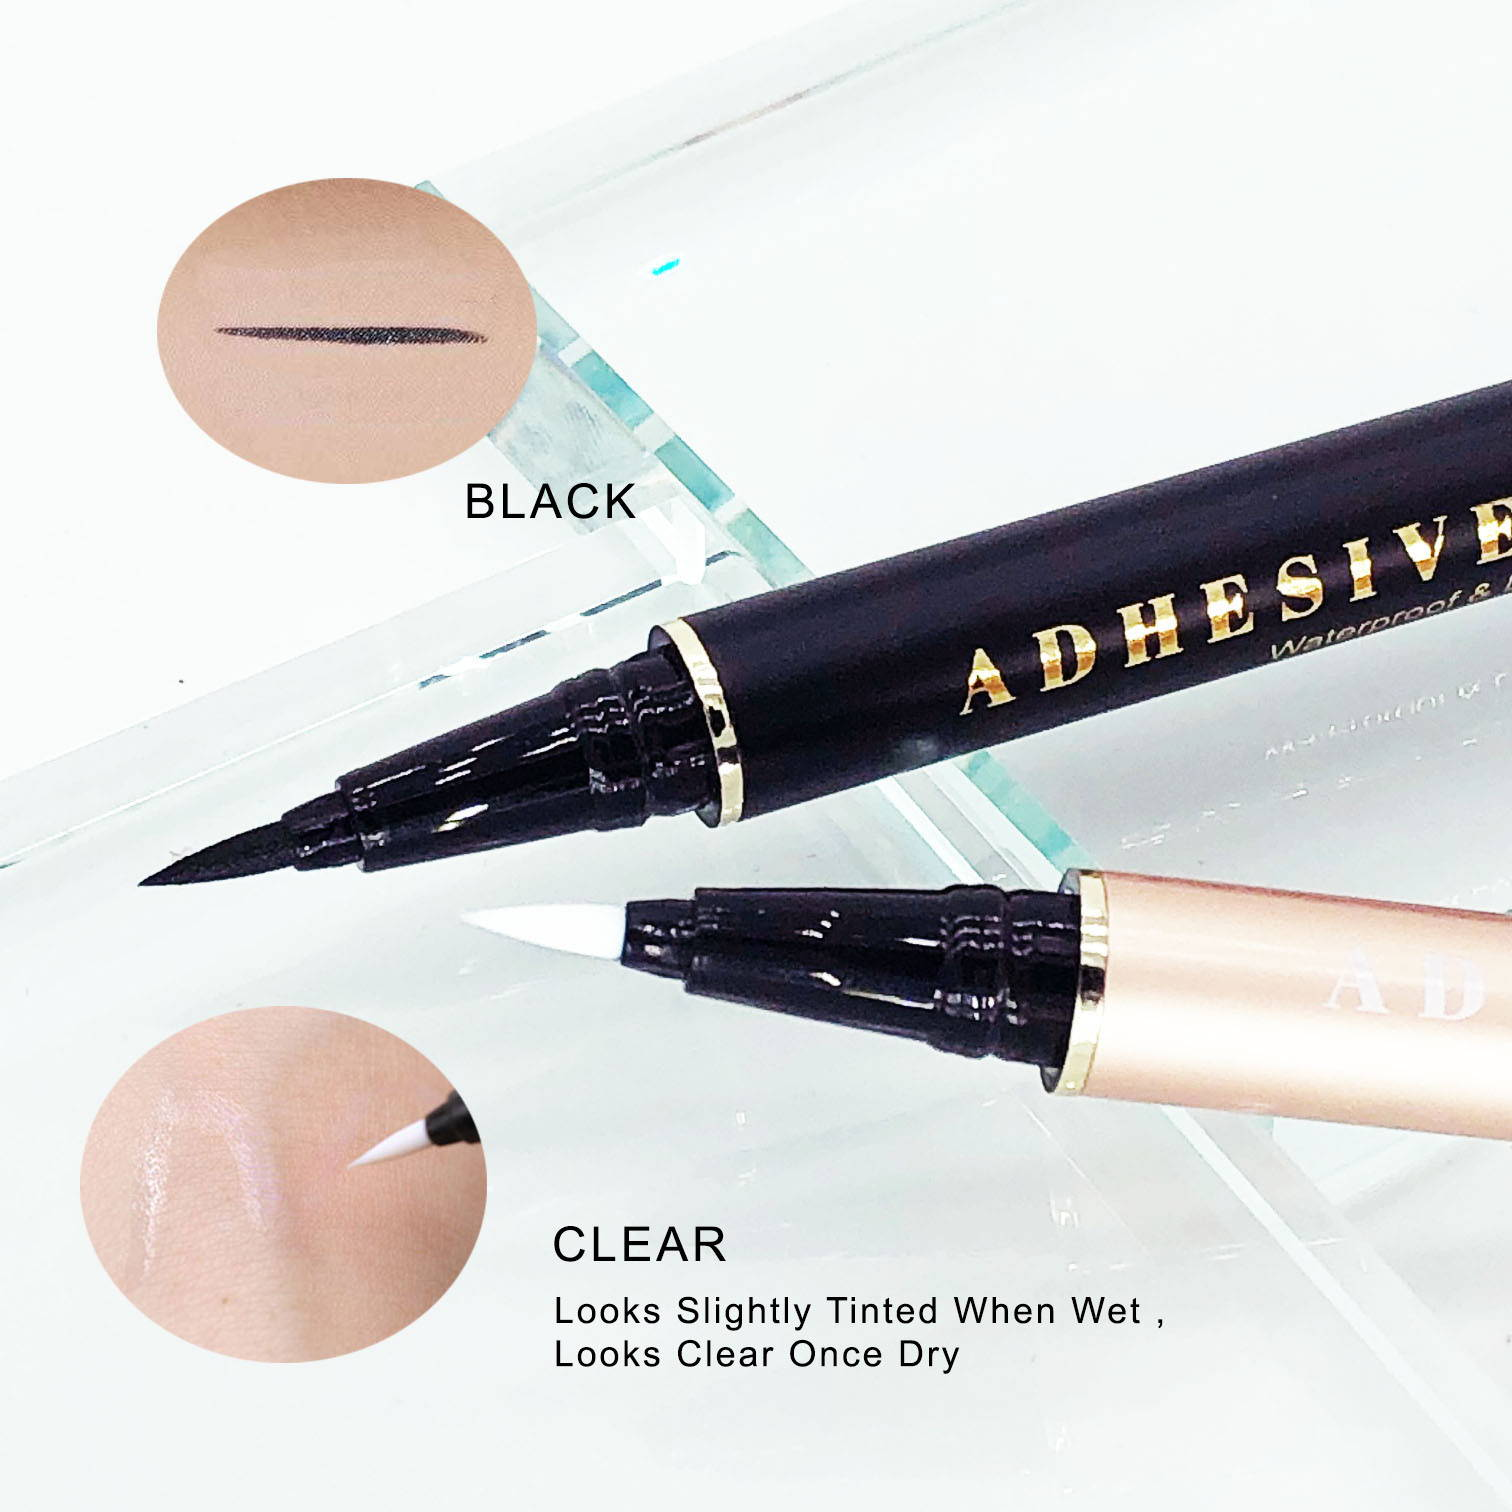 Linerbond lash adhesive eyeliner , Flick and stick , self adhesive eyeliner , quick lash adhesive liner , lolas cosmetics , velour lashes , adhesive eyeliner pen , clear adhesive eyeliner , lash glue eyeliner pen , kiss , velour lashes , lash and go , lola lashes